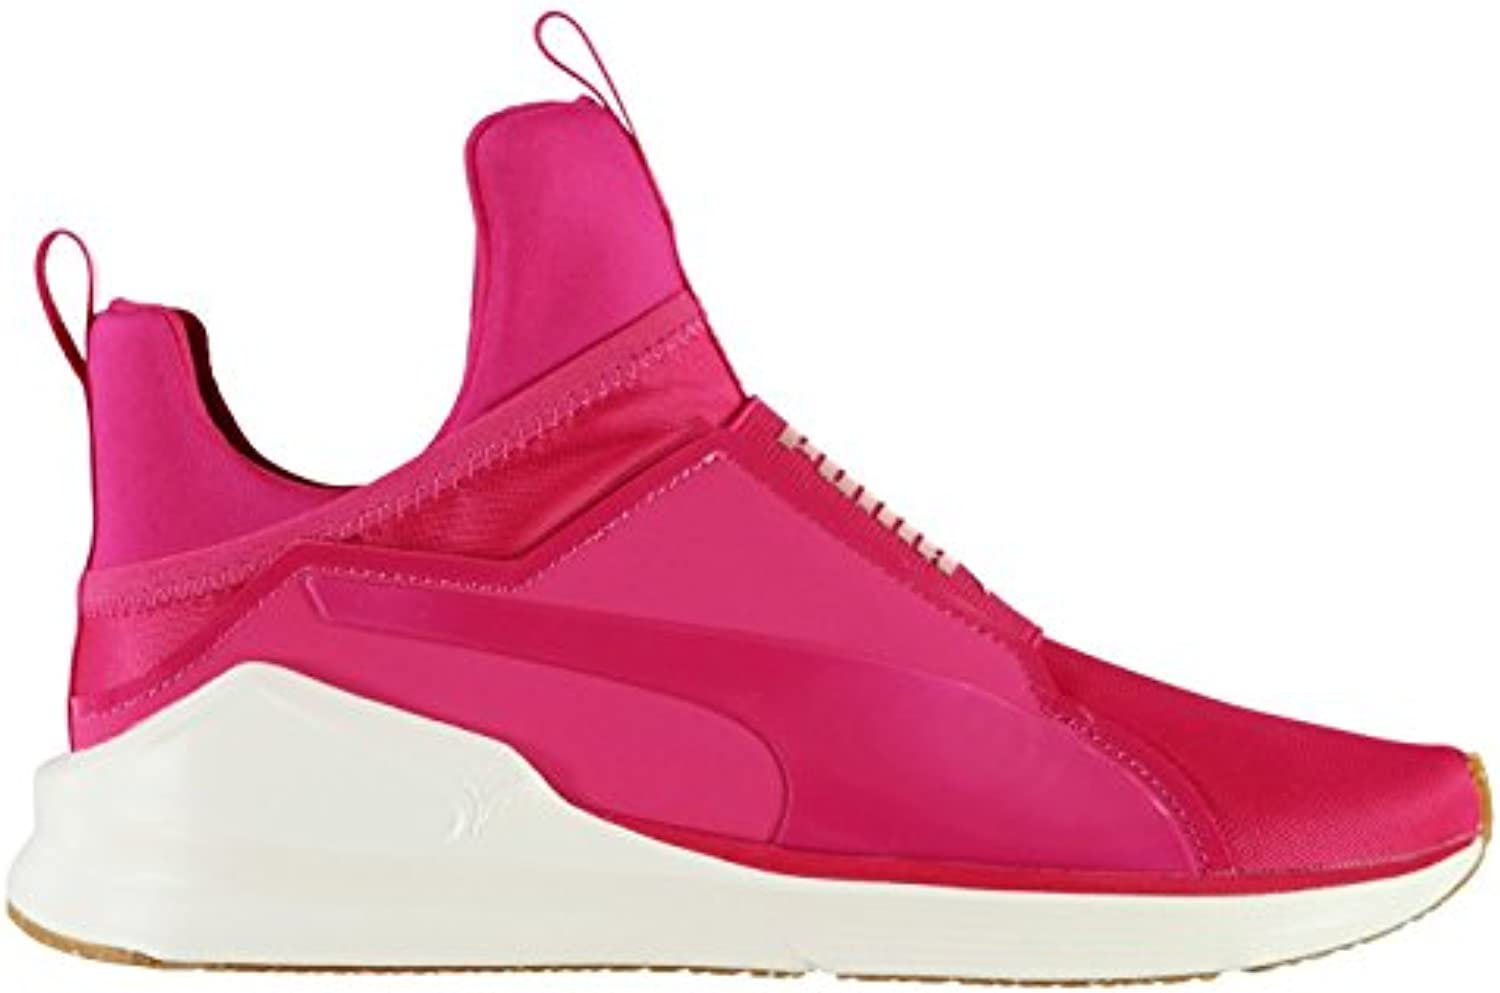 Official Shoes Puma Fierce Samt Seil FITNESS TRAINING Schuhe Damen pink Gym Trainer Sneakers